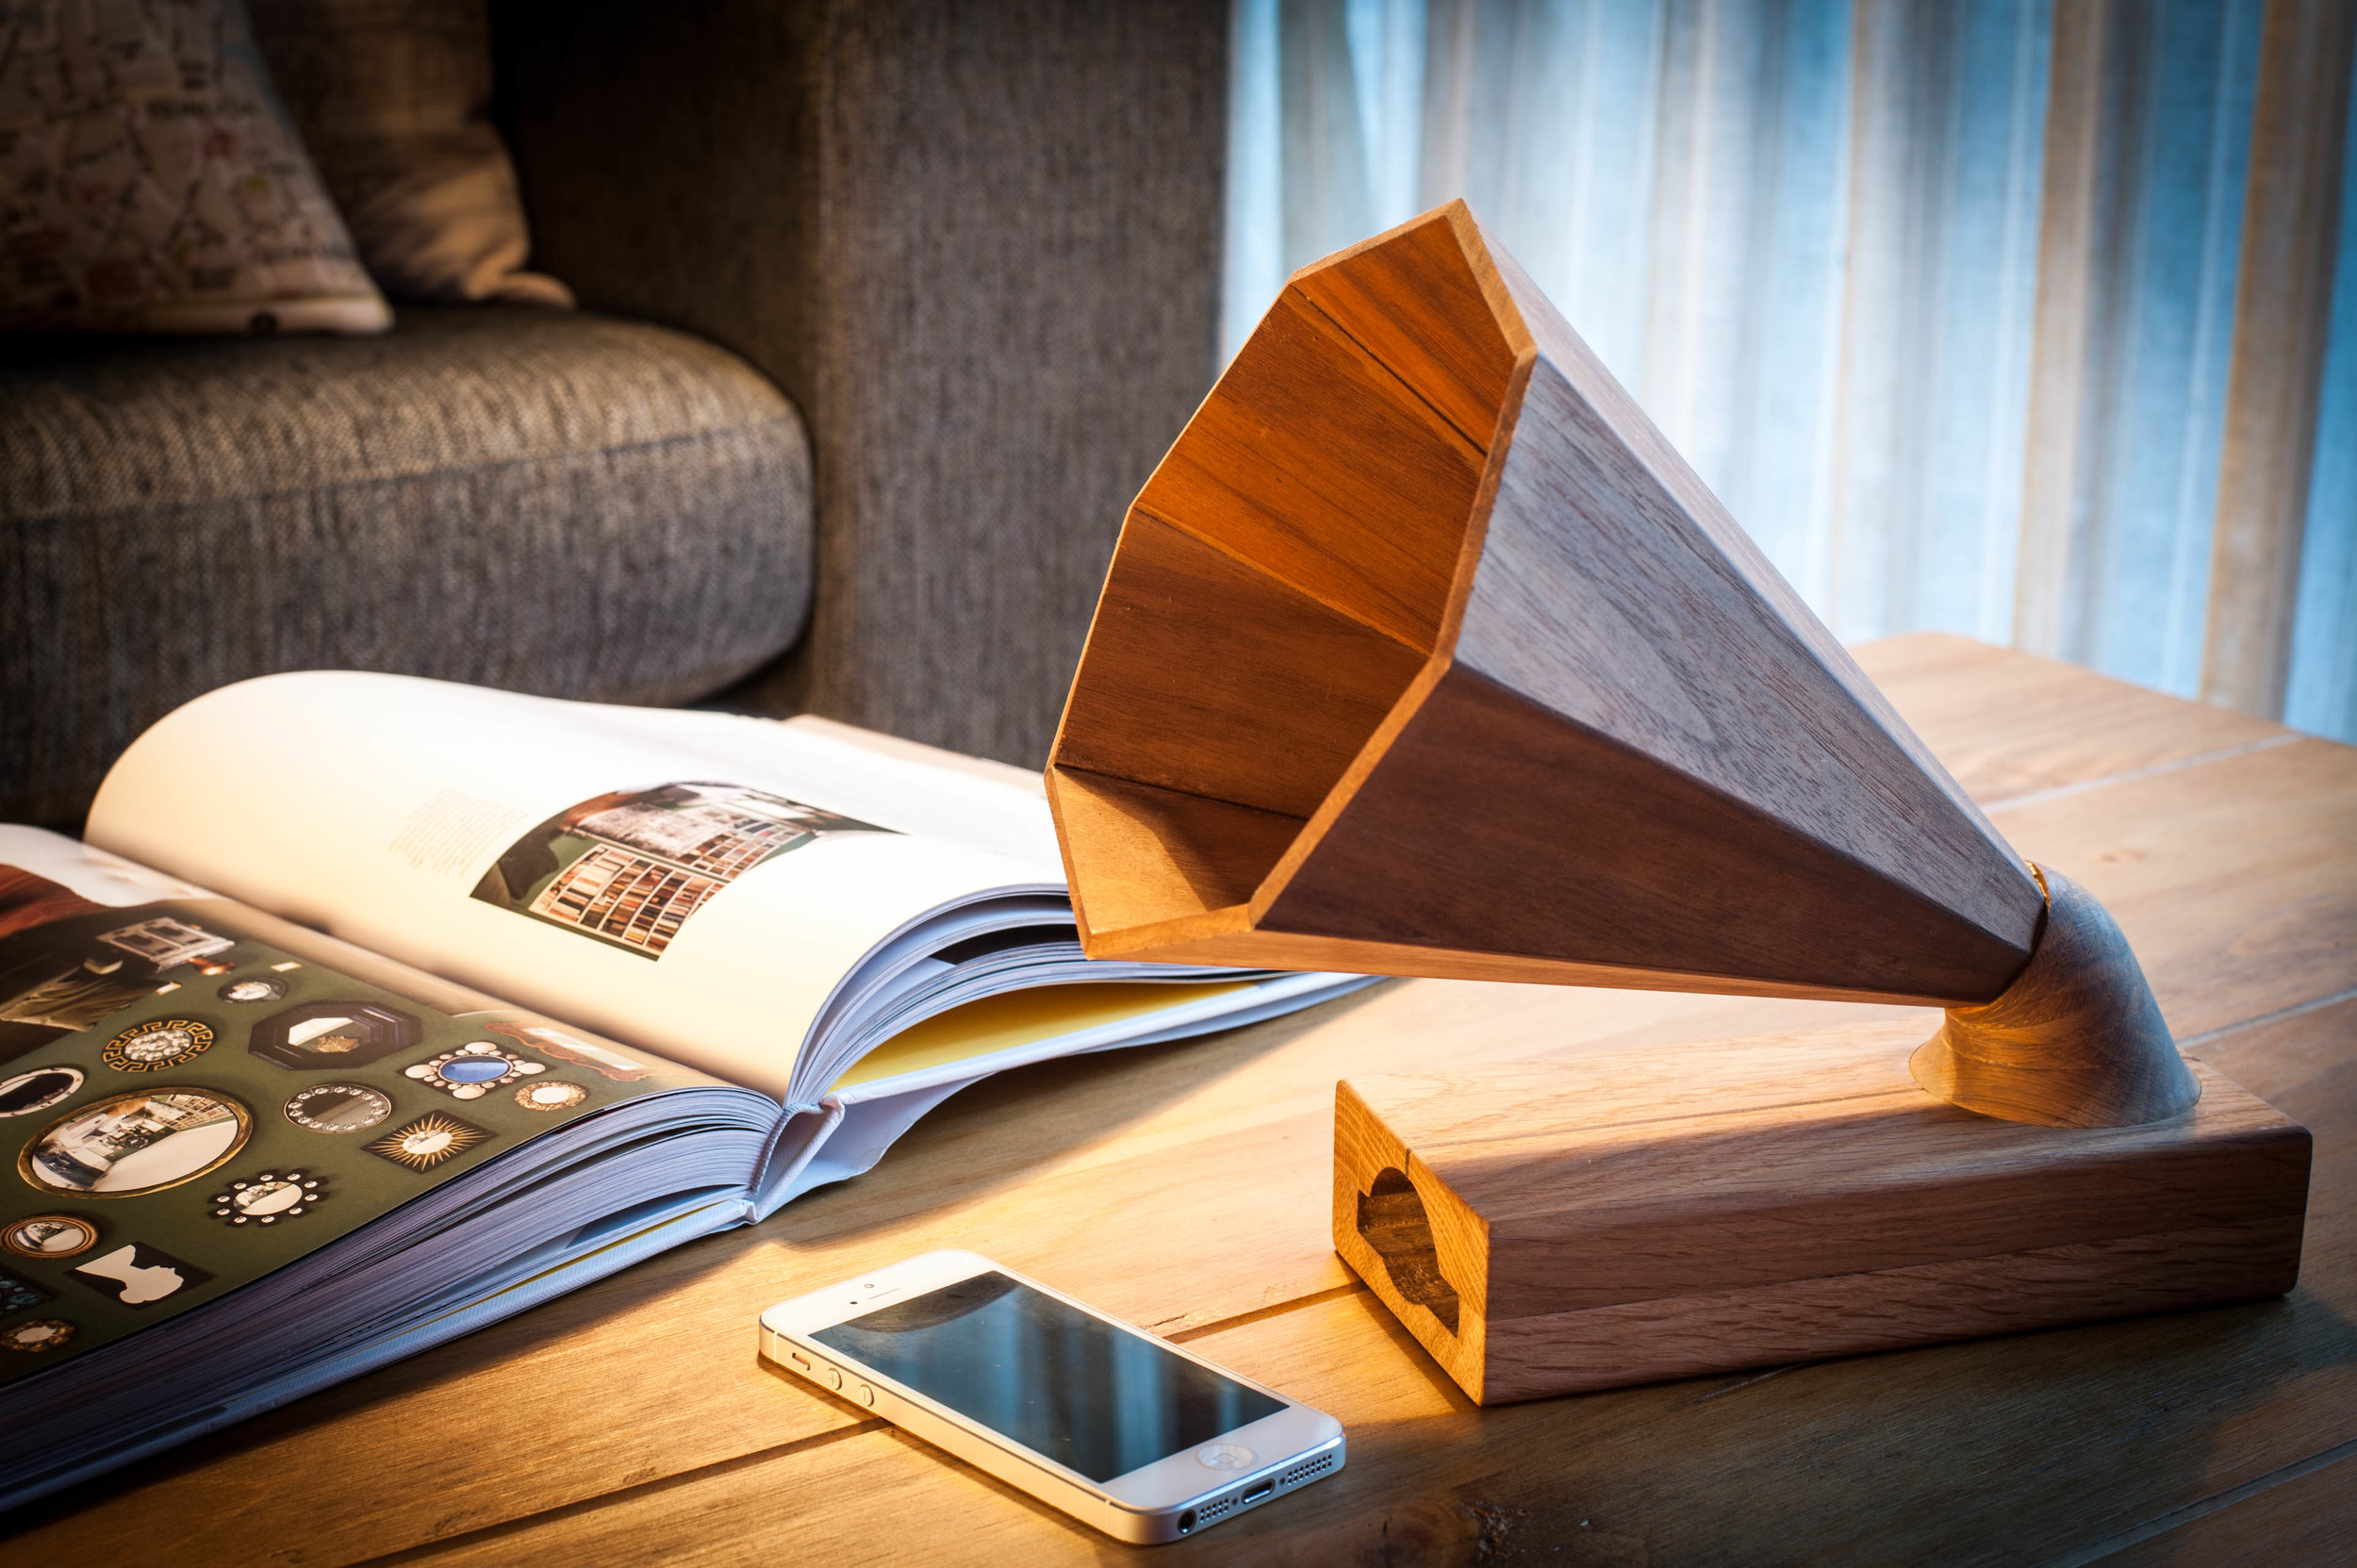 Preorder Wooden iPhone Amplifier Here